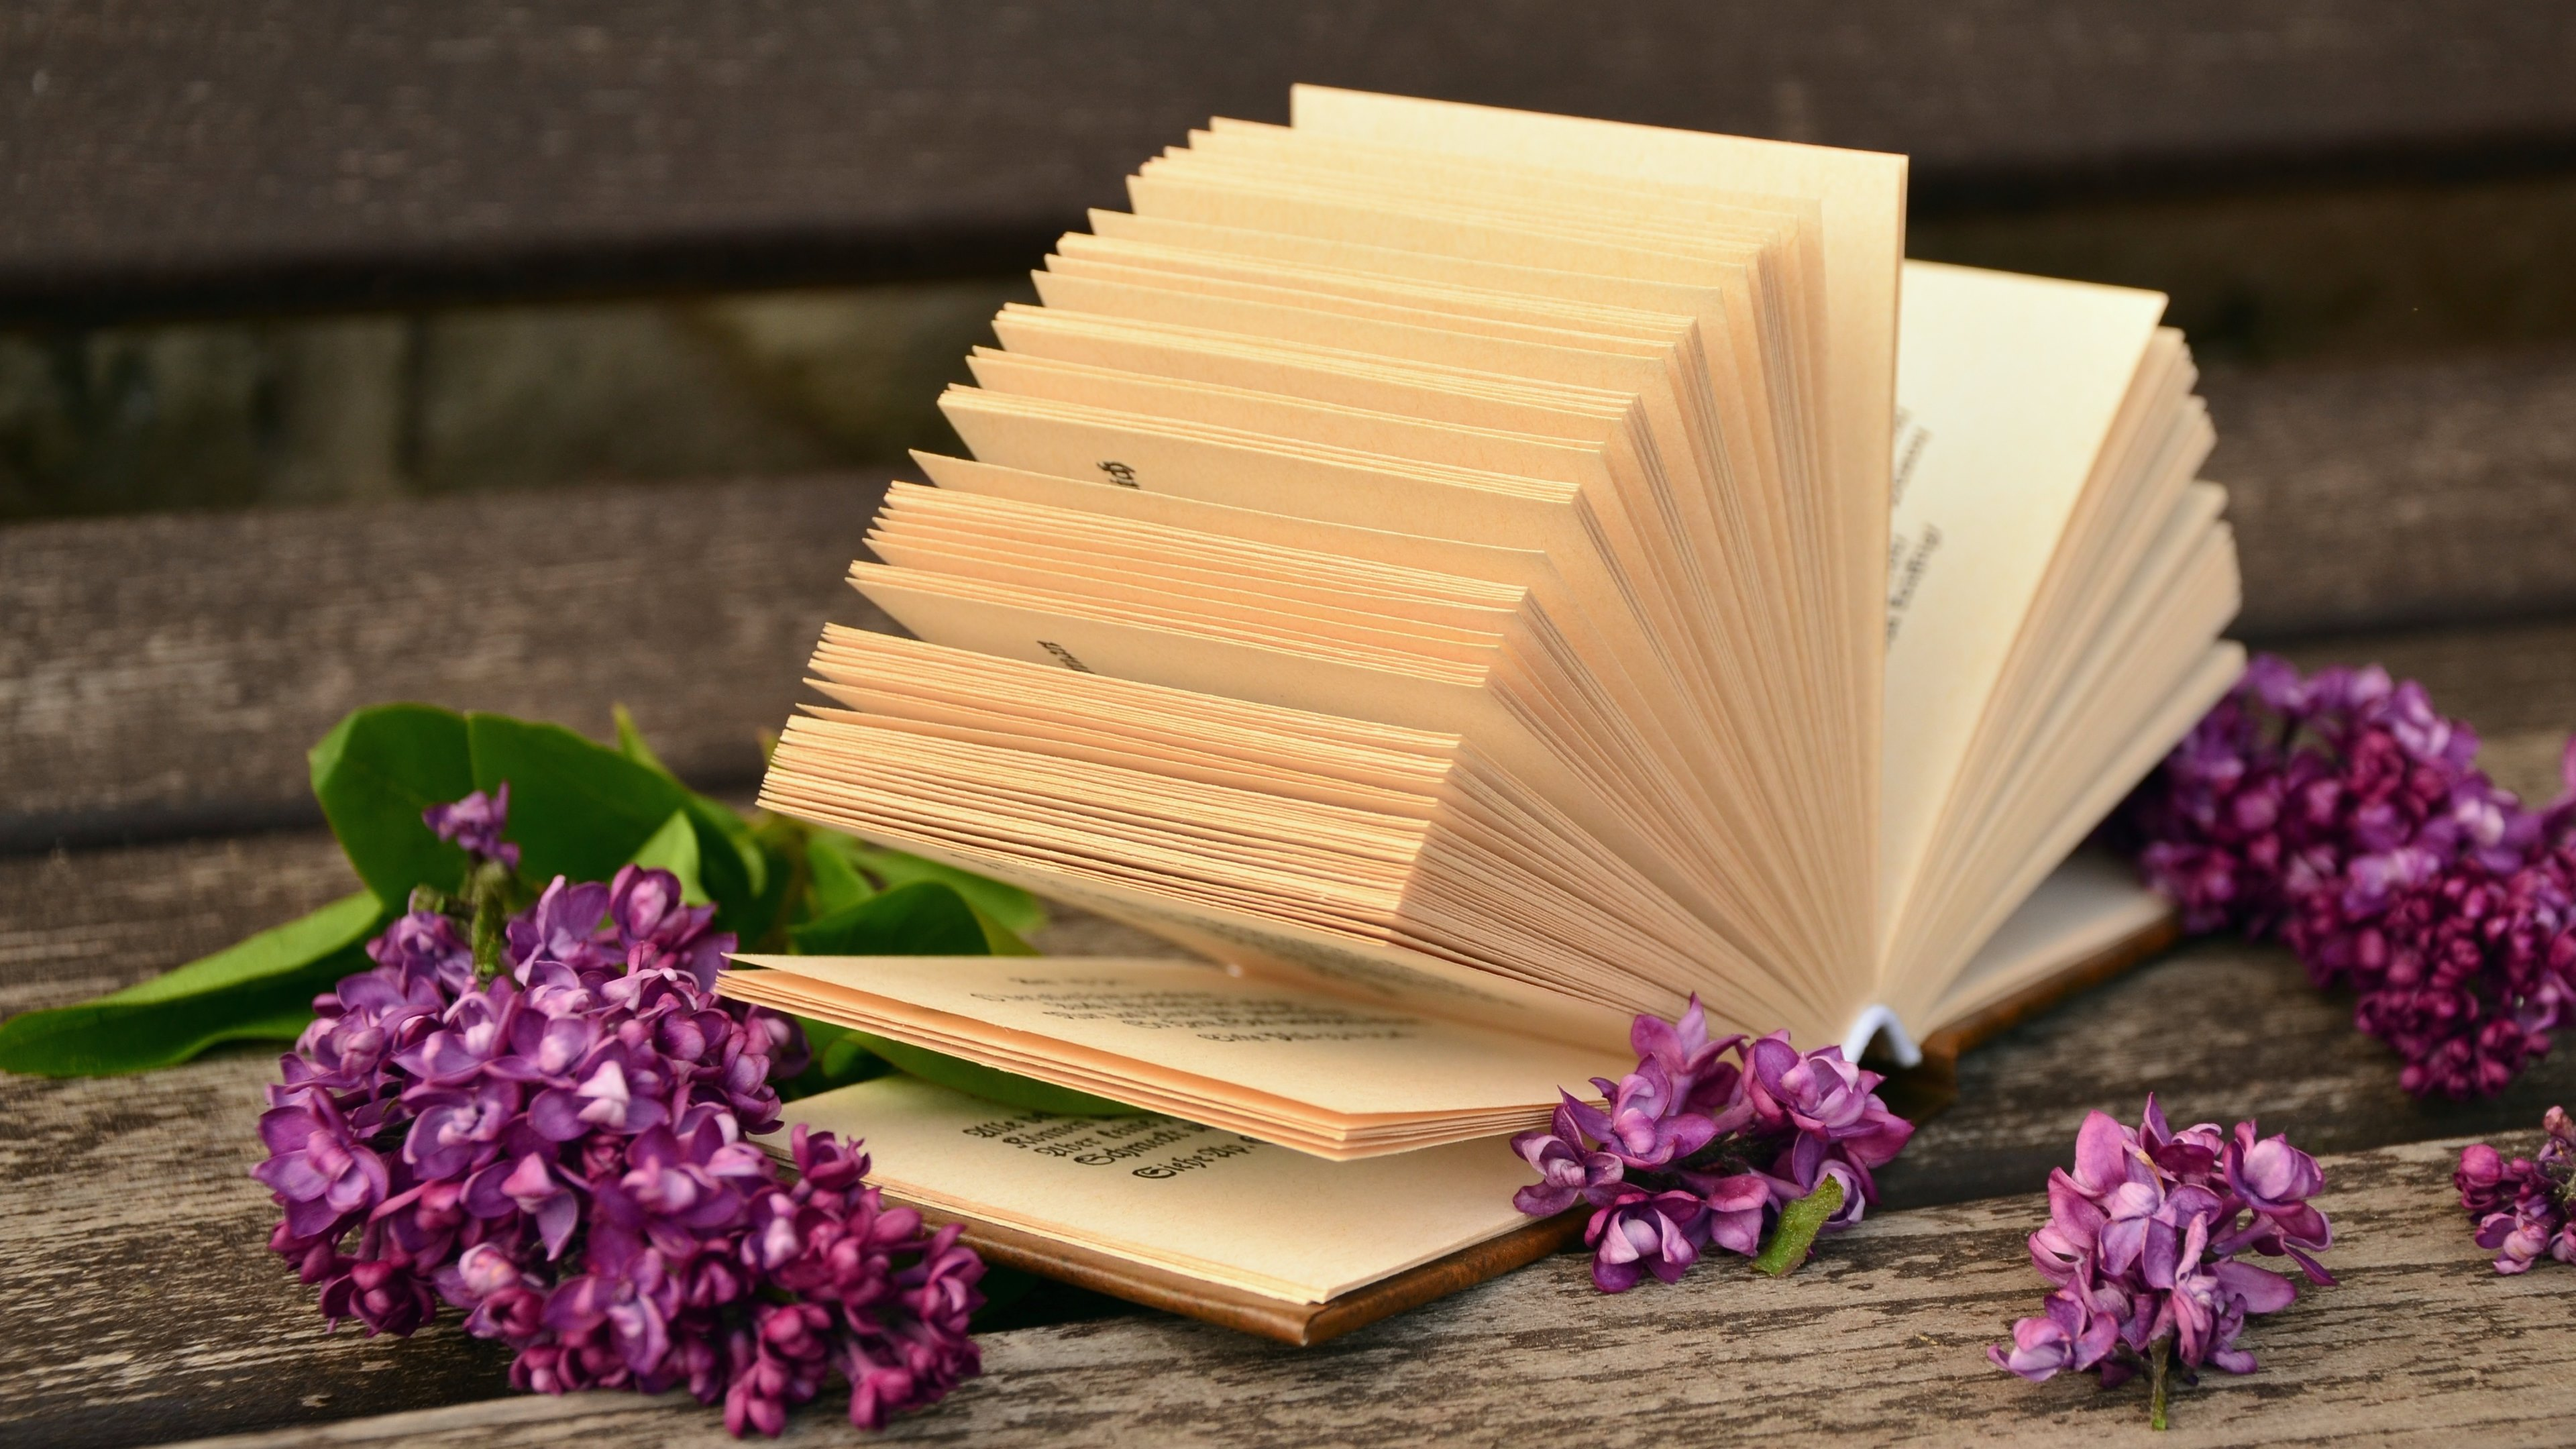 Coffee Art Livre Lilac Flowers And A Good Book 4k Ultra Hd Wallpaper And